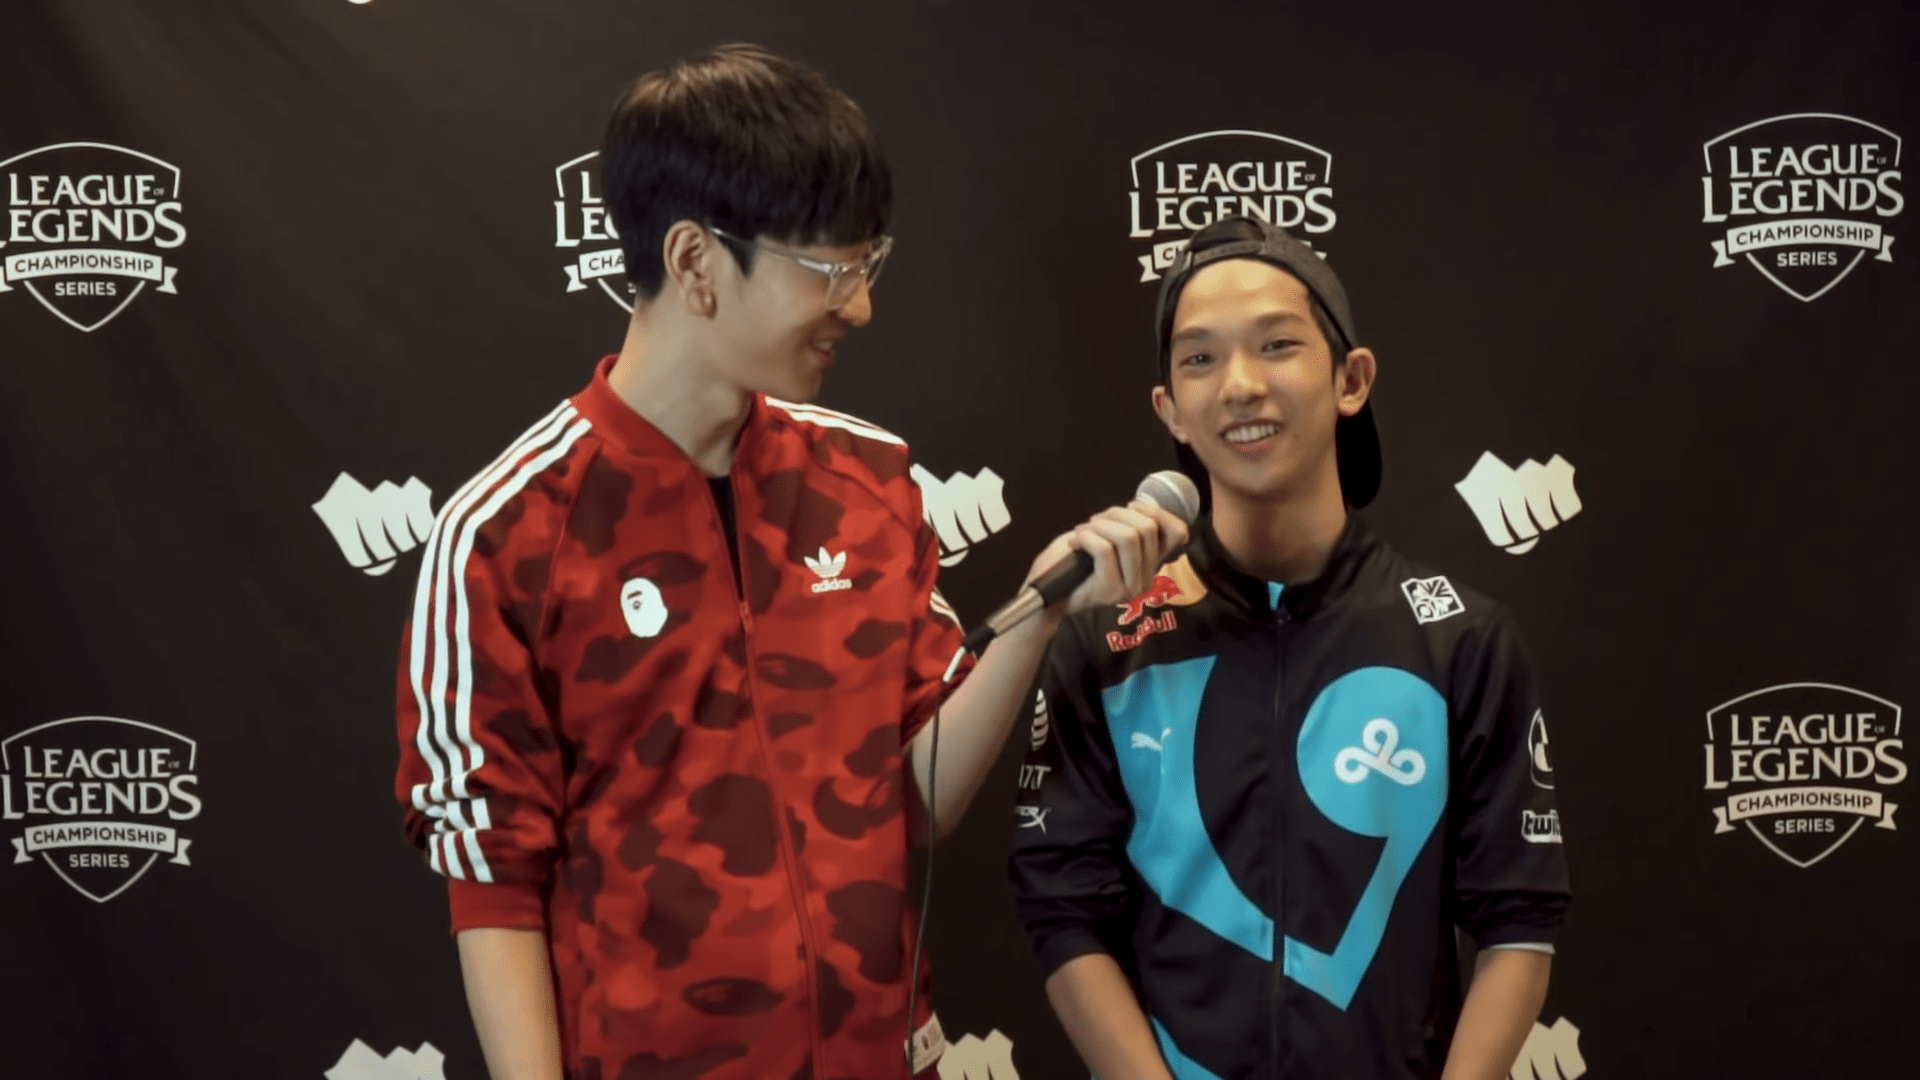 Cloud9 Finalizes Roster For The League Of Legends Championship Series 2020 Season